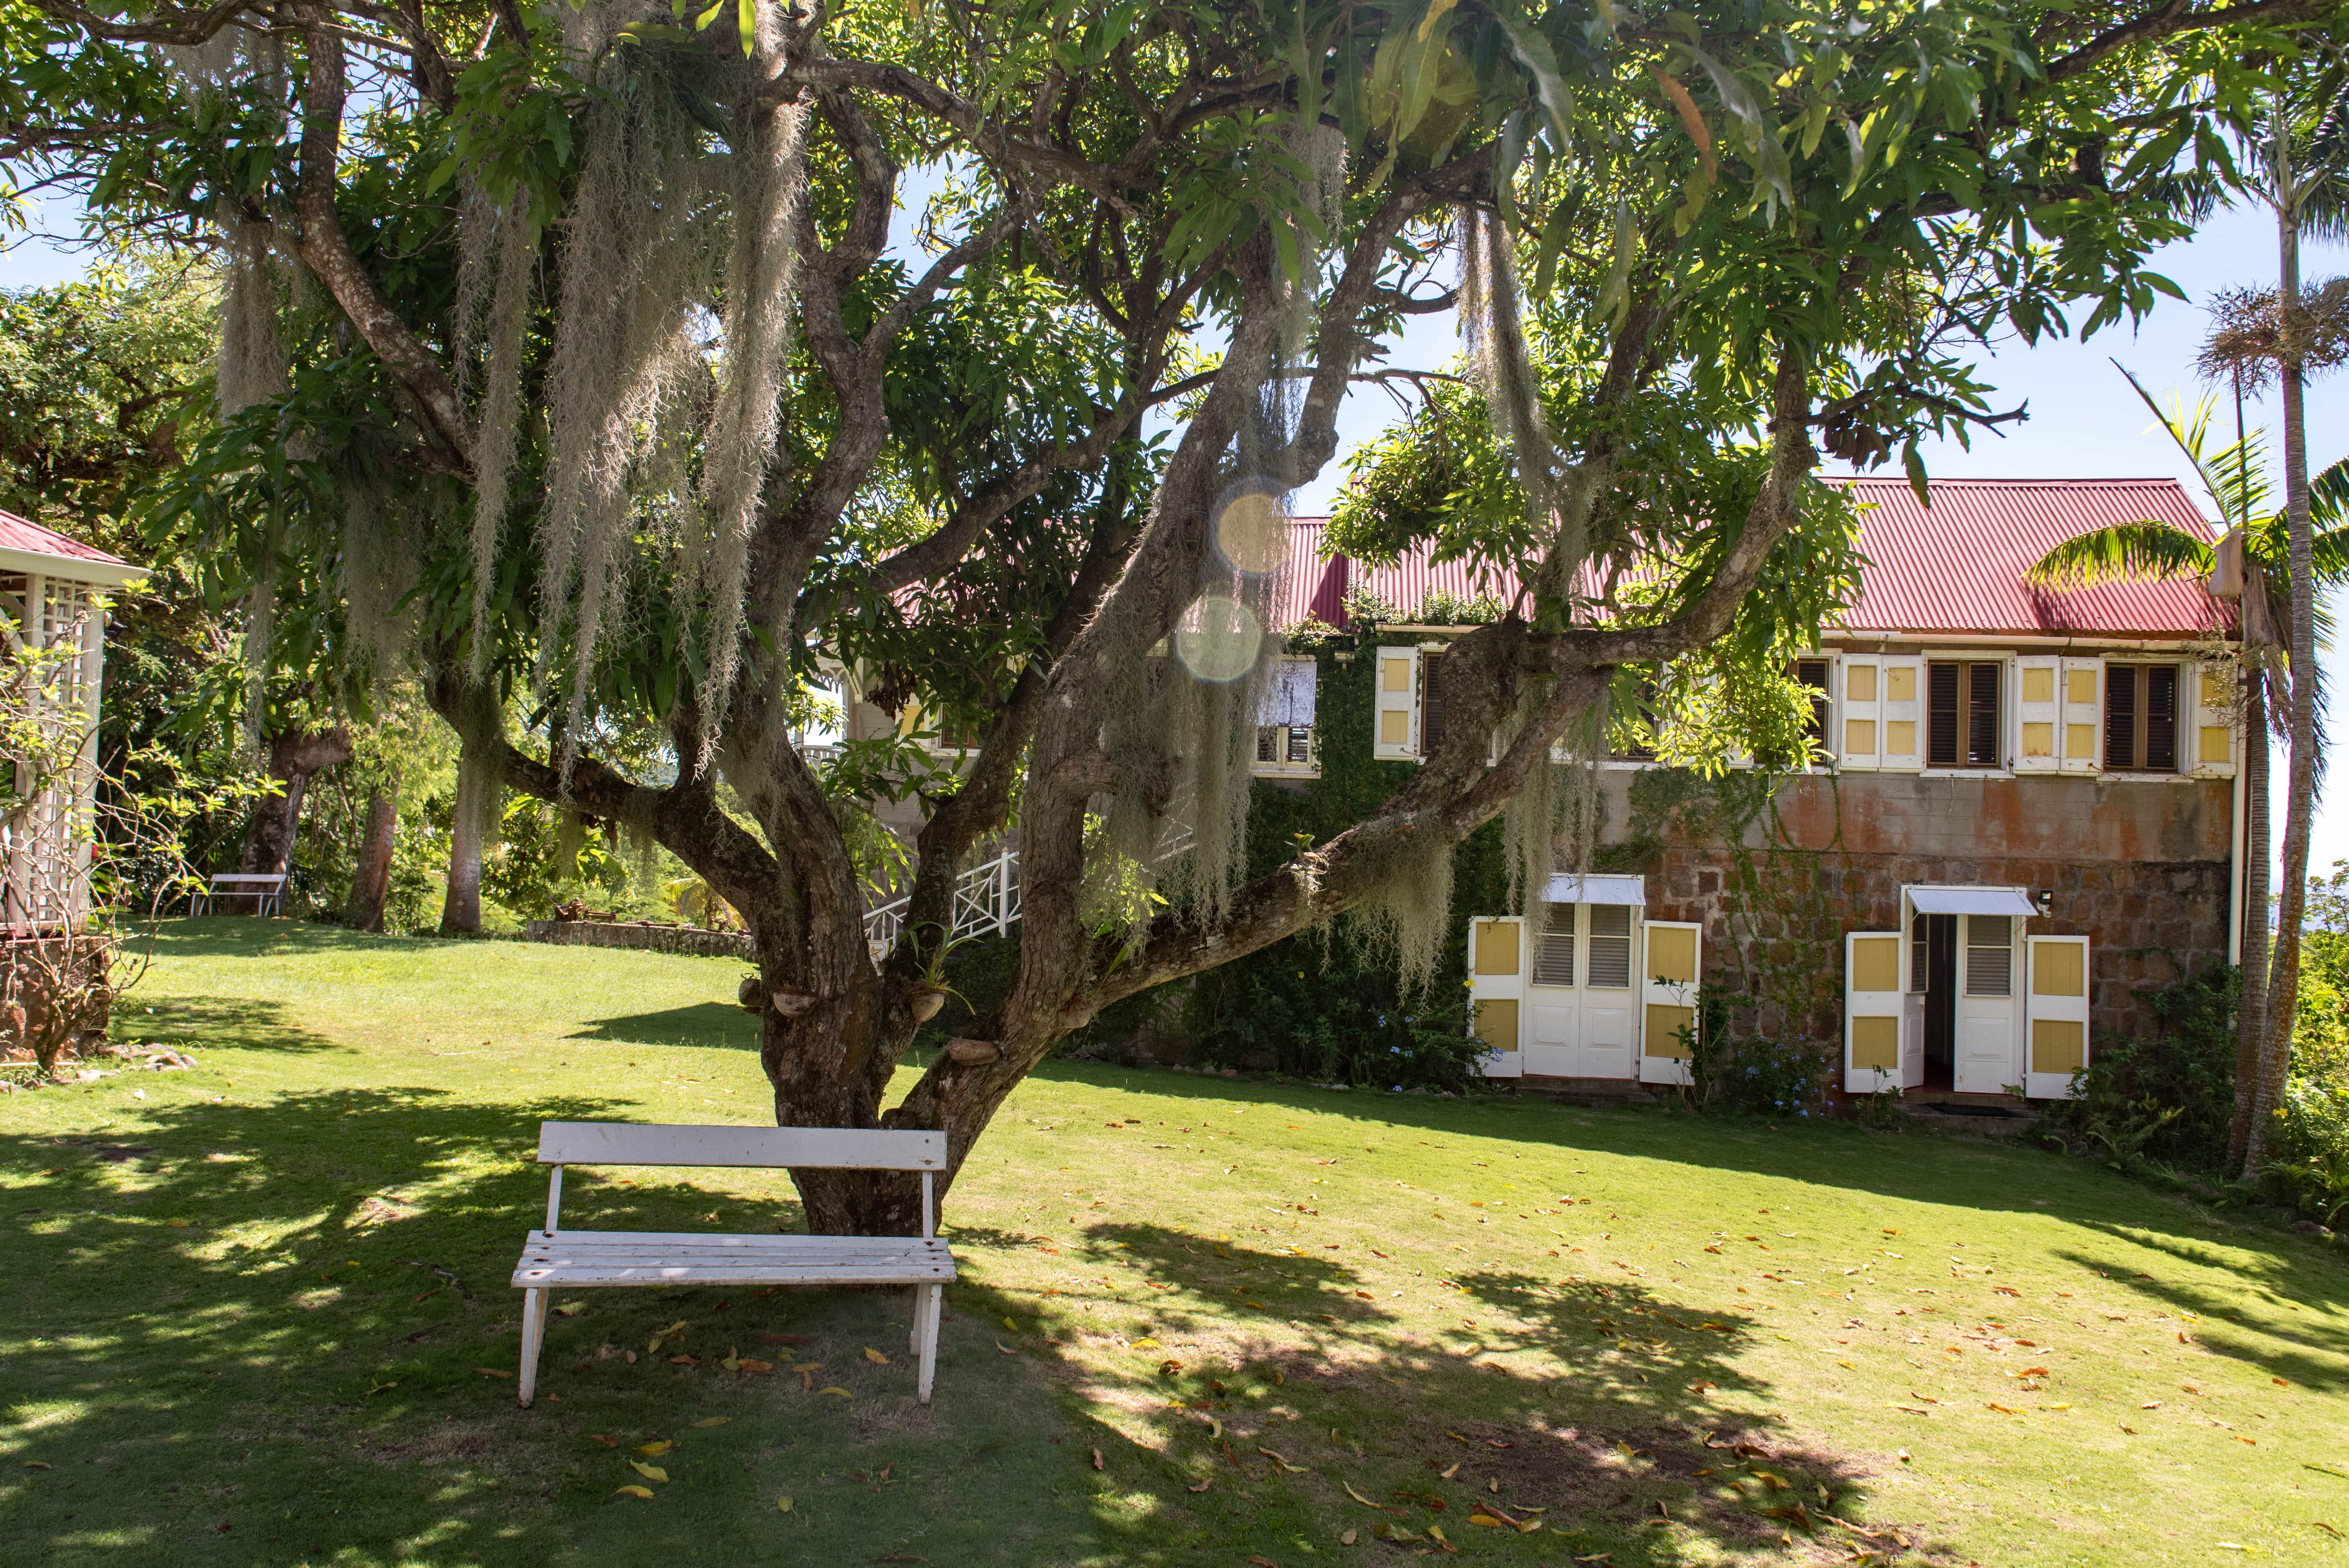 Find idyllic locations to settle down and take in your historic surroundings.